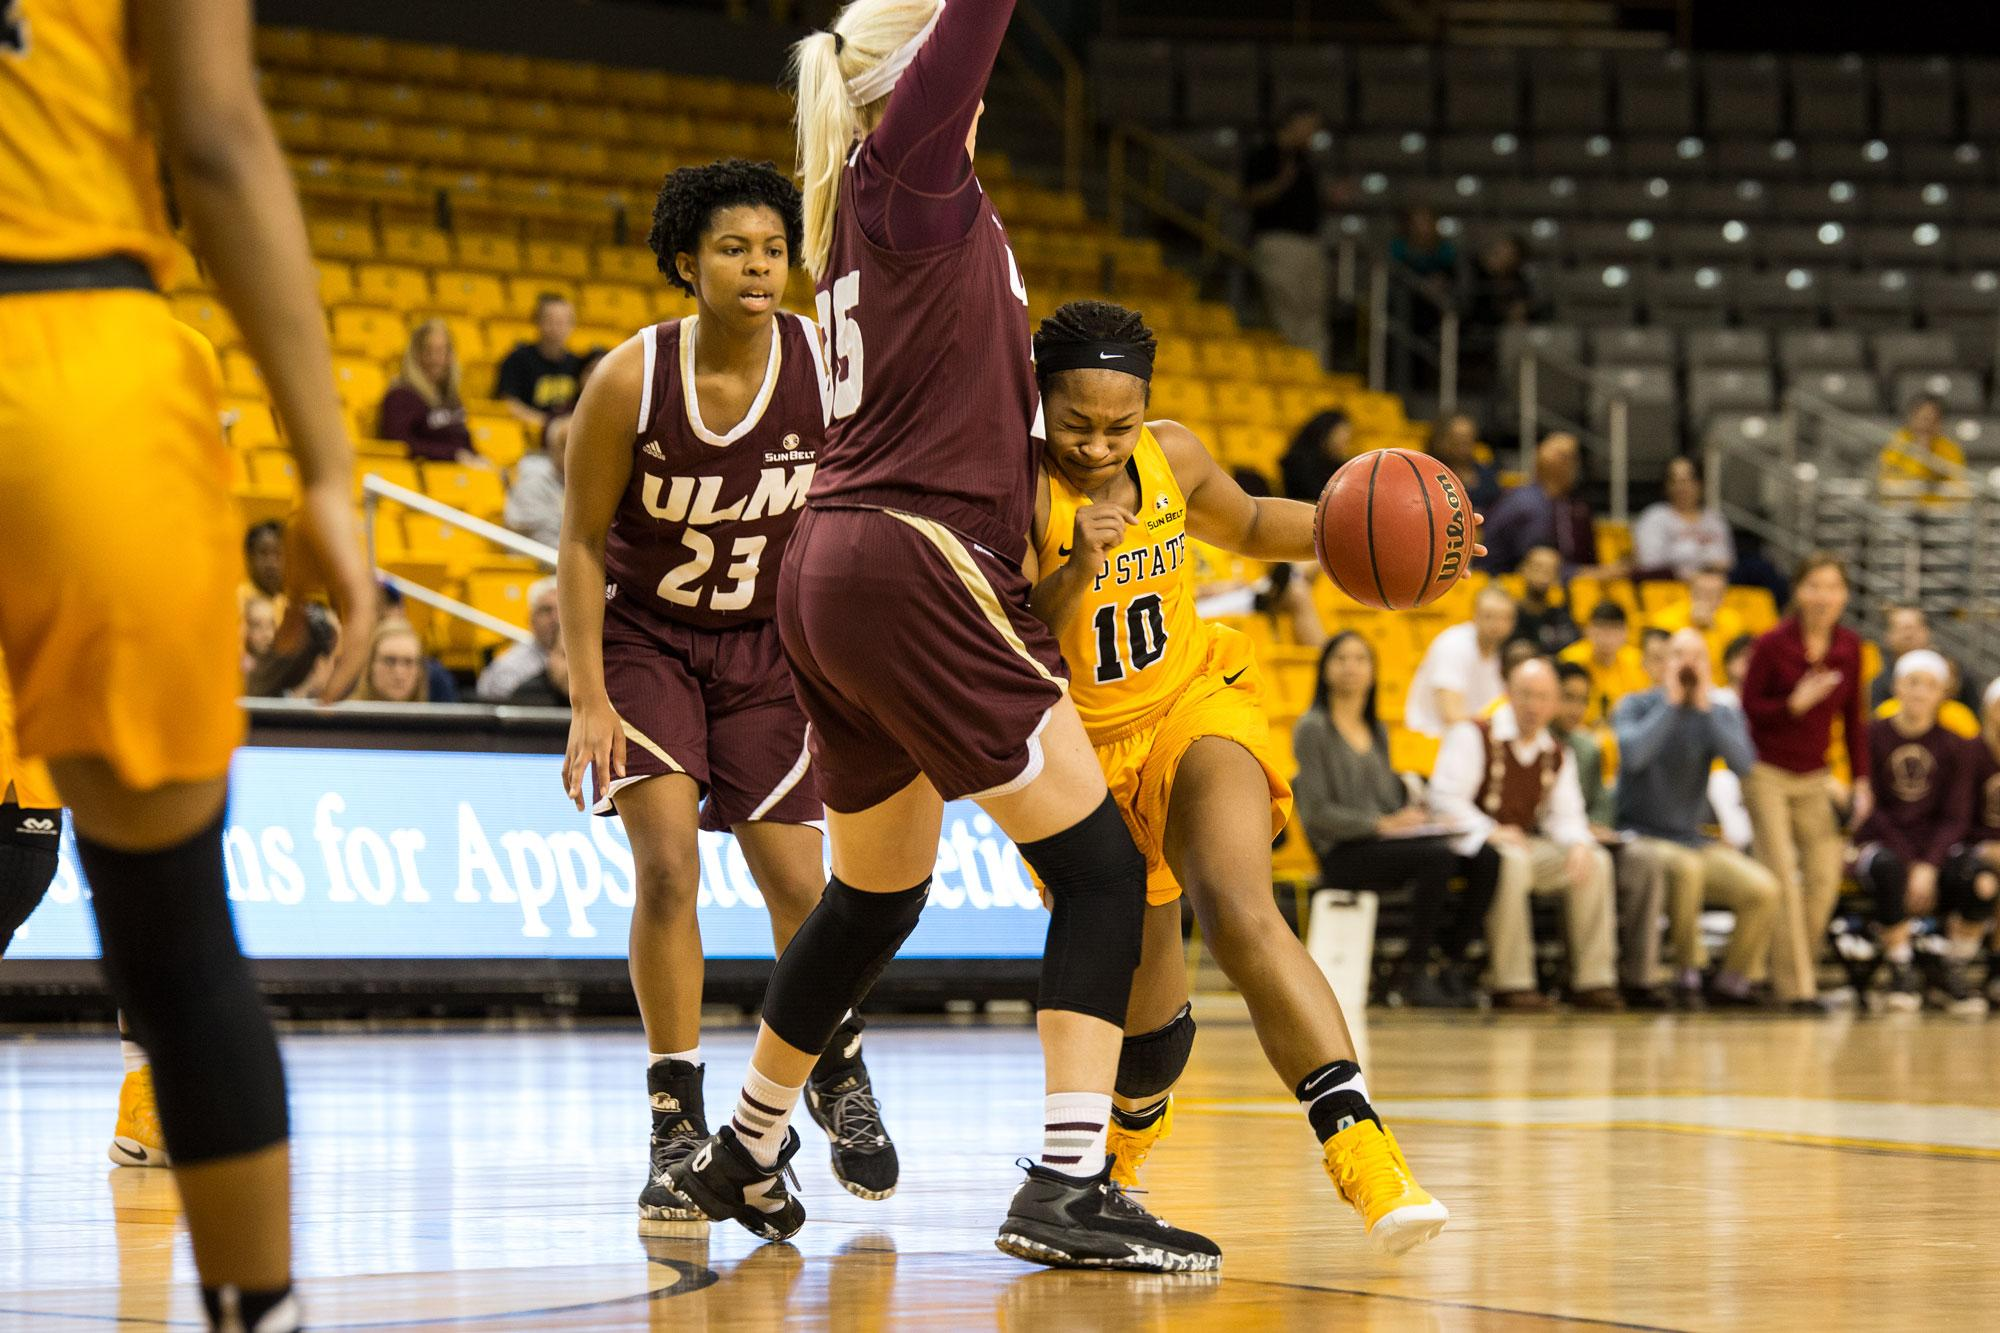 App State's senior Joi Jones drives past a Warhawks defender en route to a Mountaineer victory over ULM.